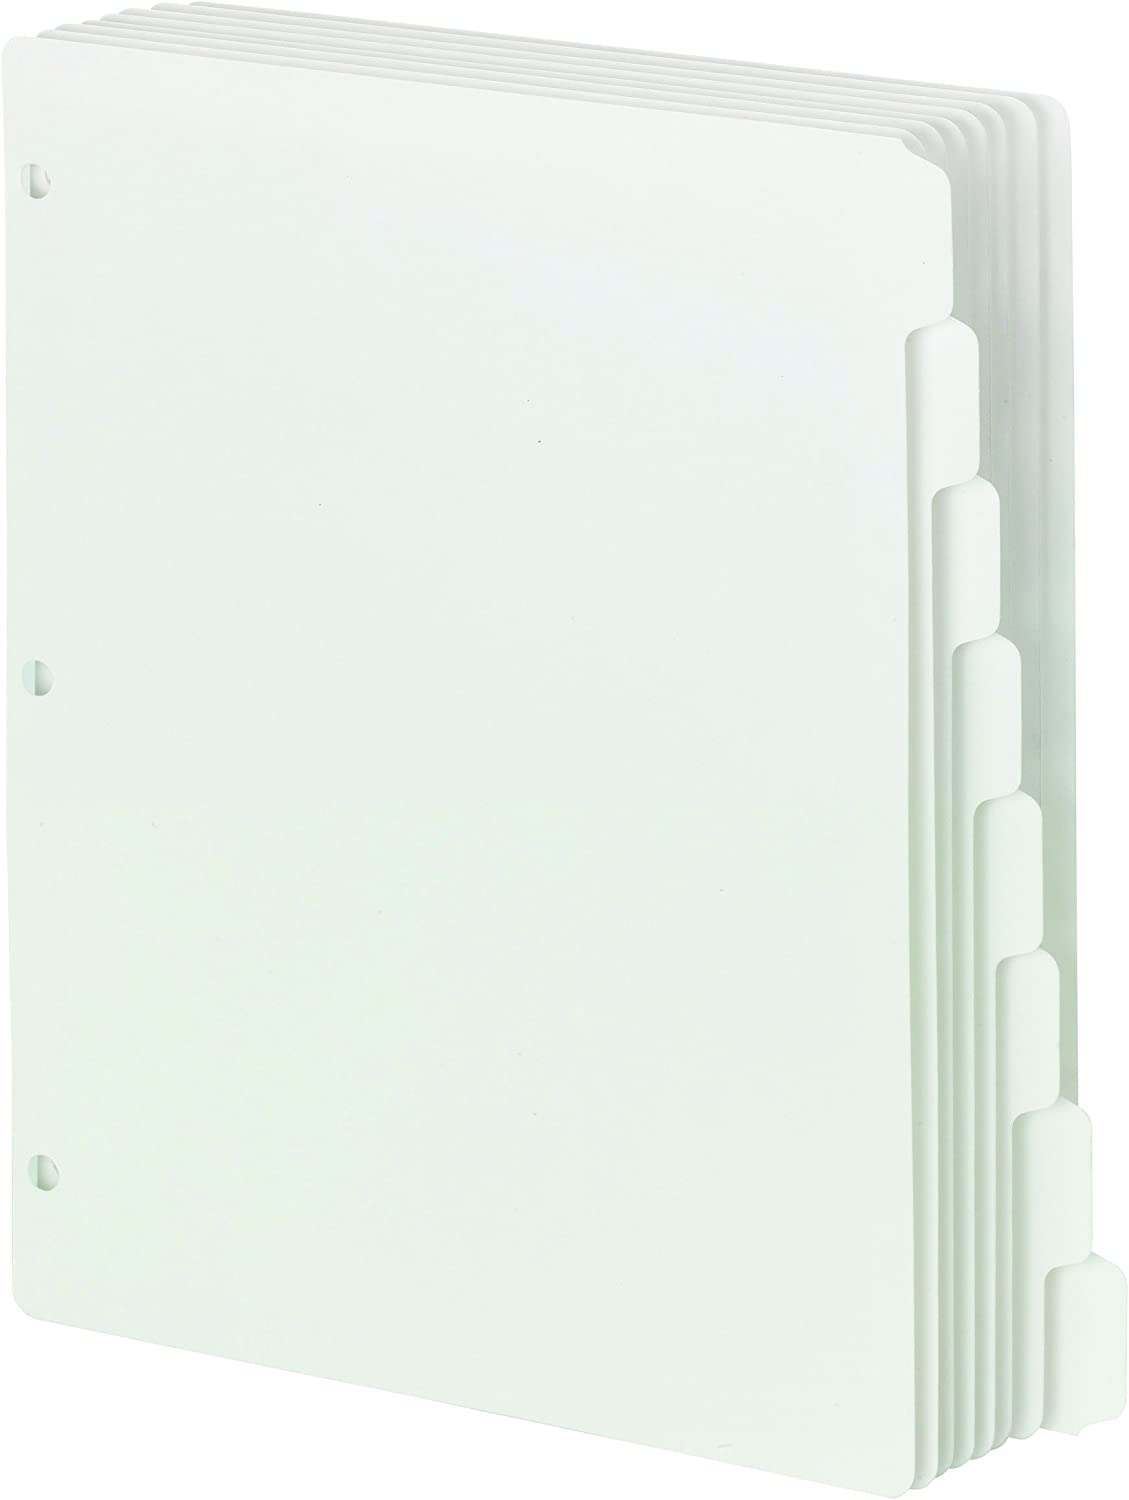 89418 Smead Three-Ring Binder Index Dividers White Letter Size 1//8-Cut Tab 96 per Box